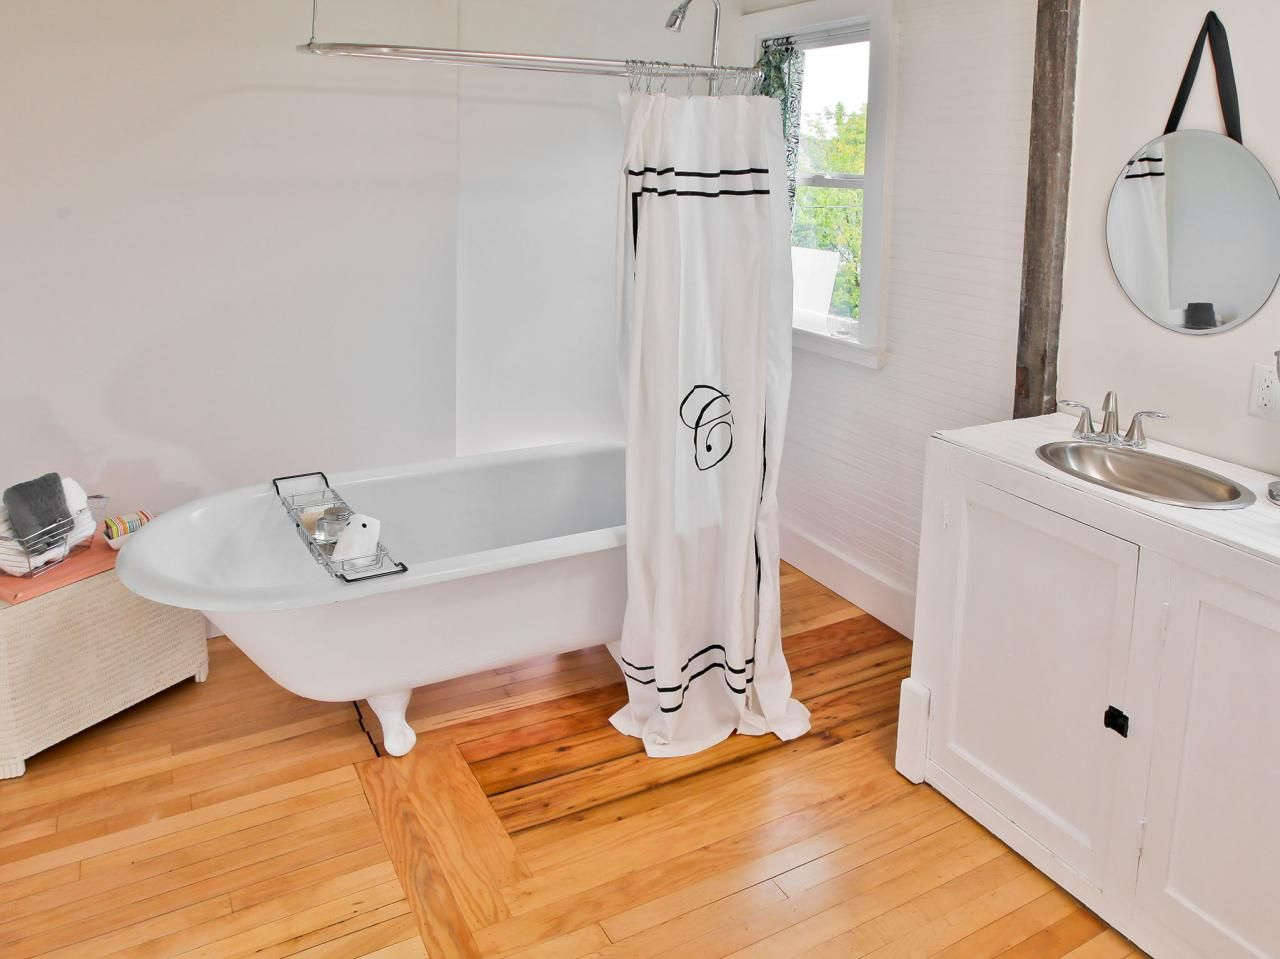 20 Small Bathroom Before and Afters | Bath remodel, Small bathroom ...